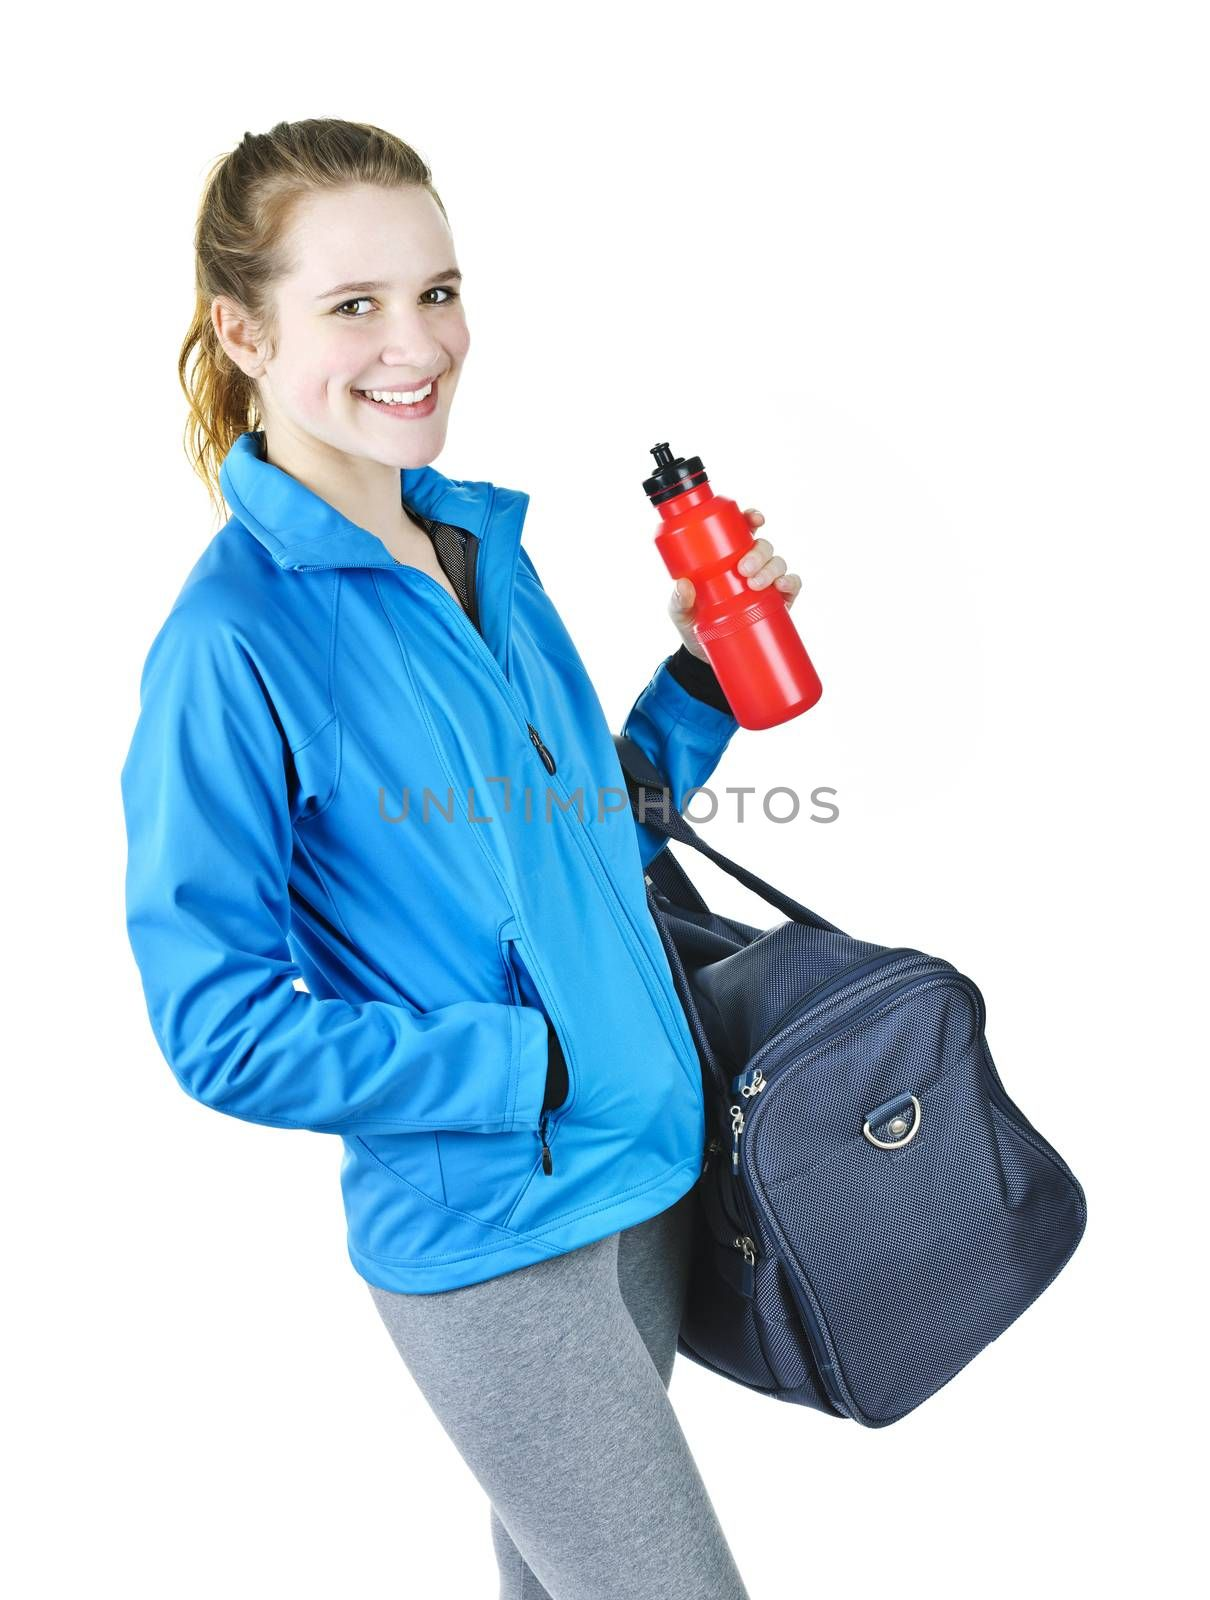 Smiling fit young woman with gym bag and water bottle ready for fitness exercise